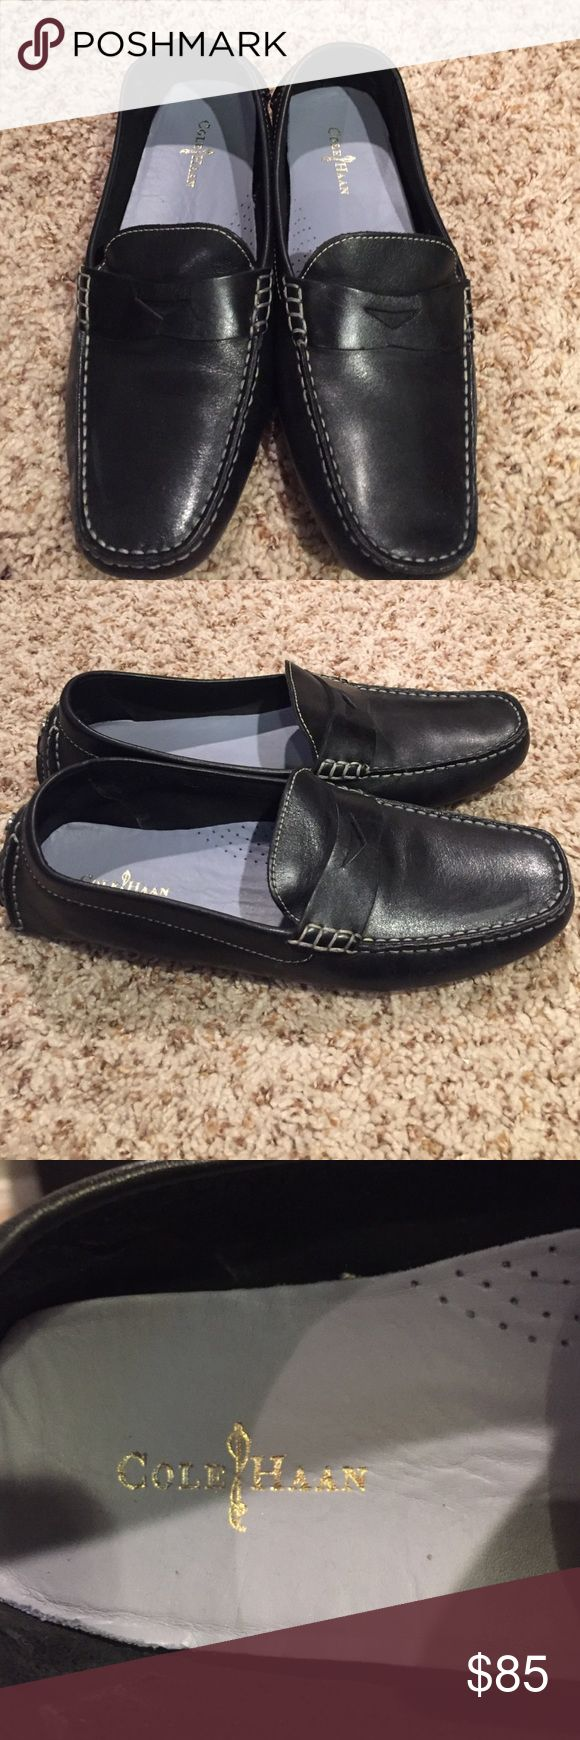 Cole Haan Trillby Driving Loafers--Womens Black loafers, like new! Only worn once. Cole Haan Shoes Flats & Loafers